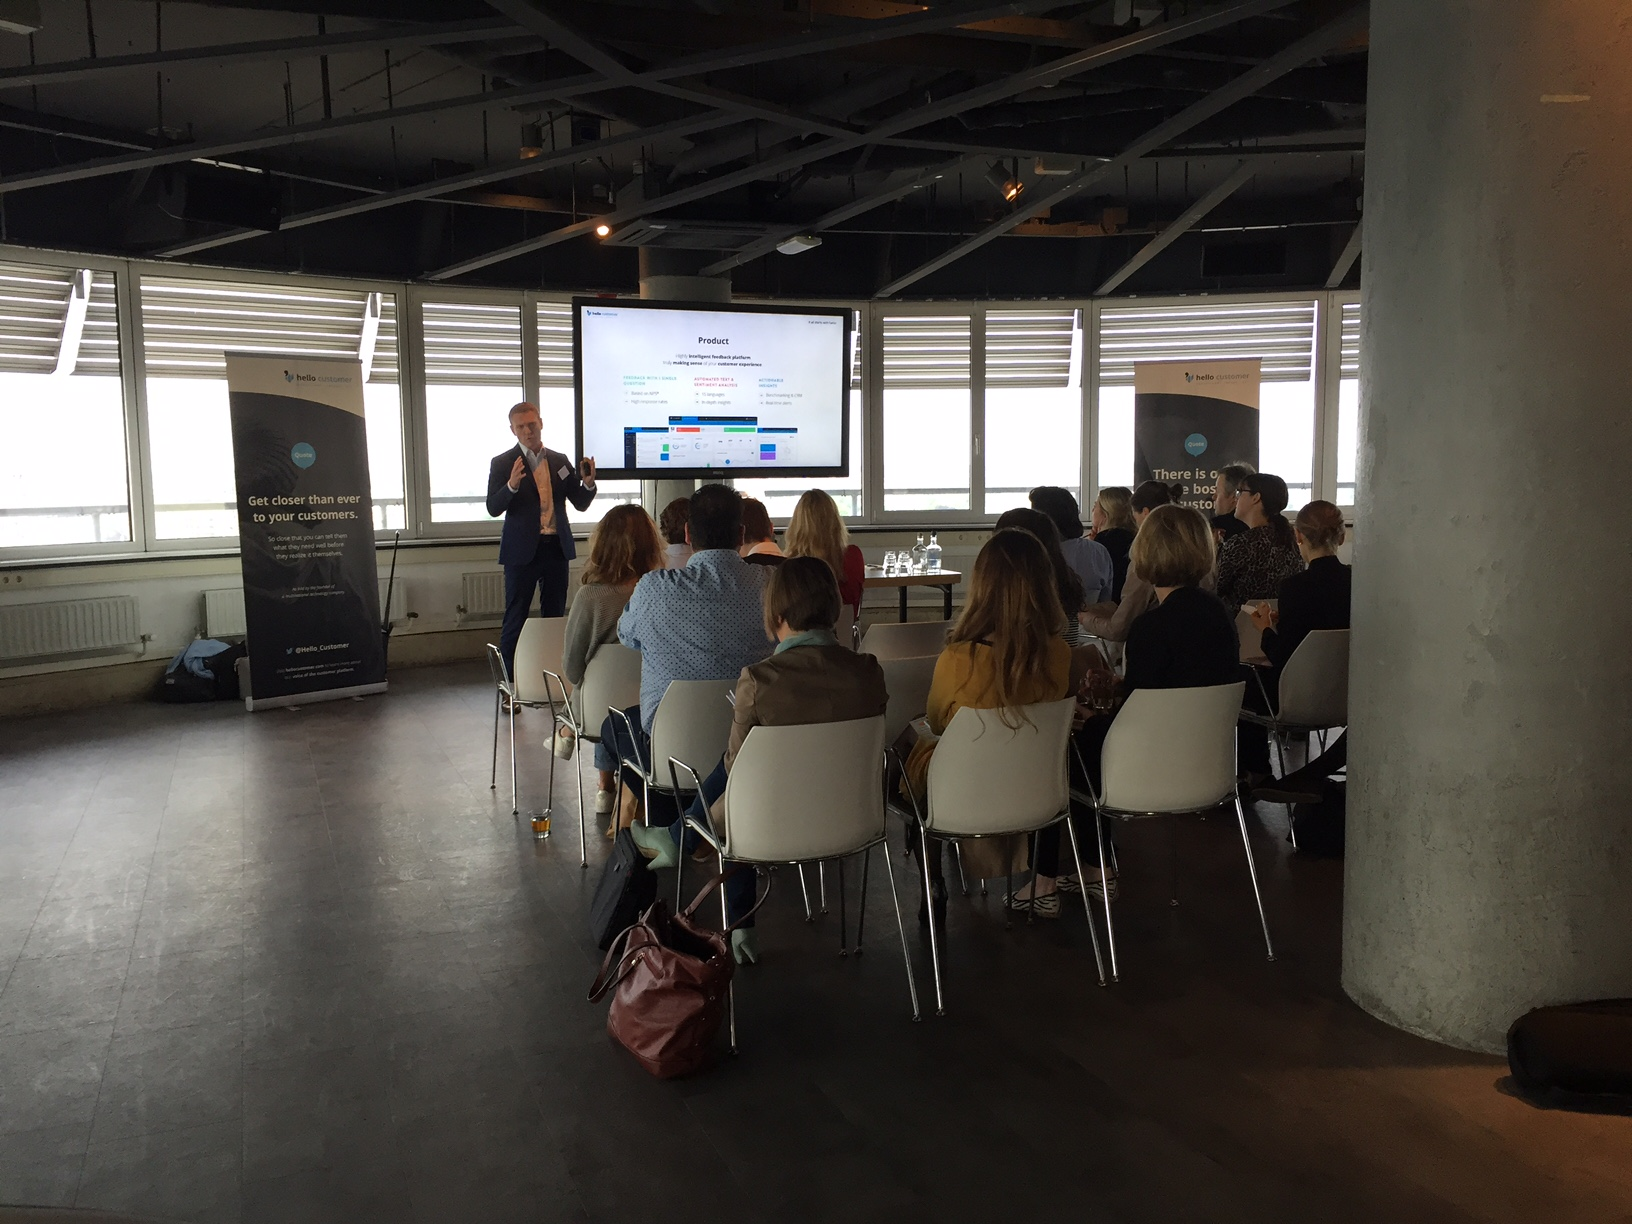 The future of retail. A Recap from our Breakfast Session in Amsterdam